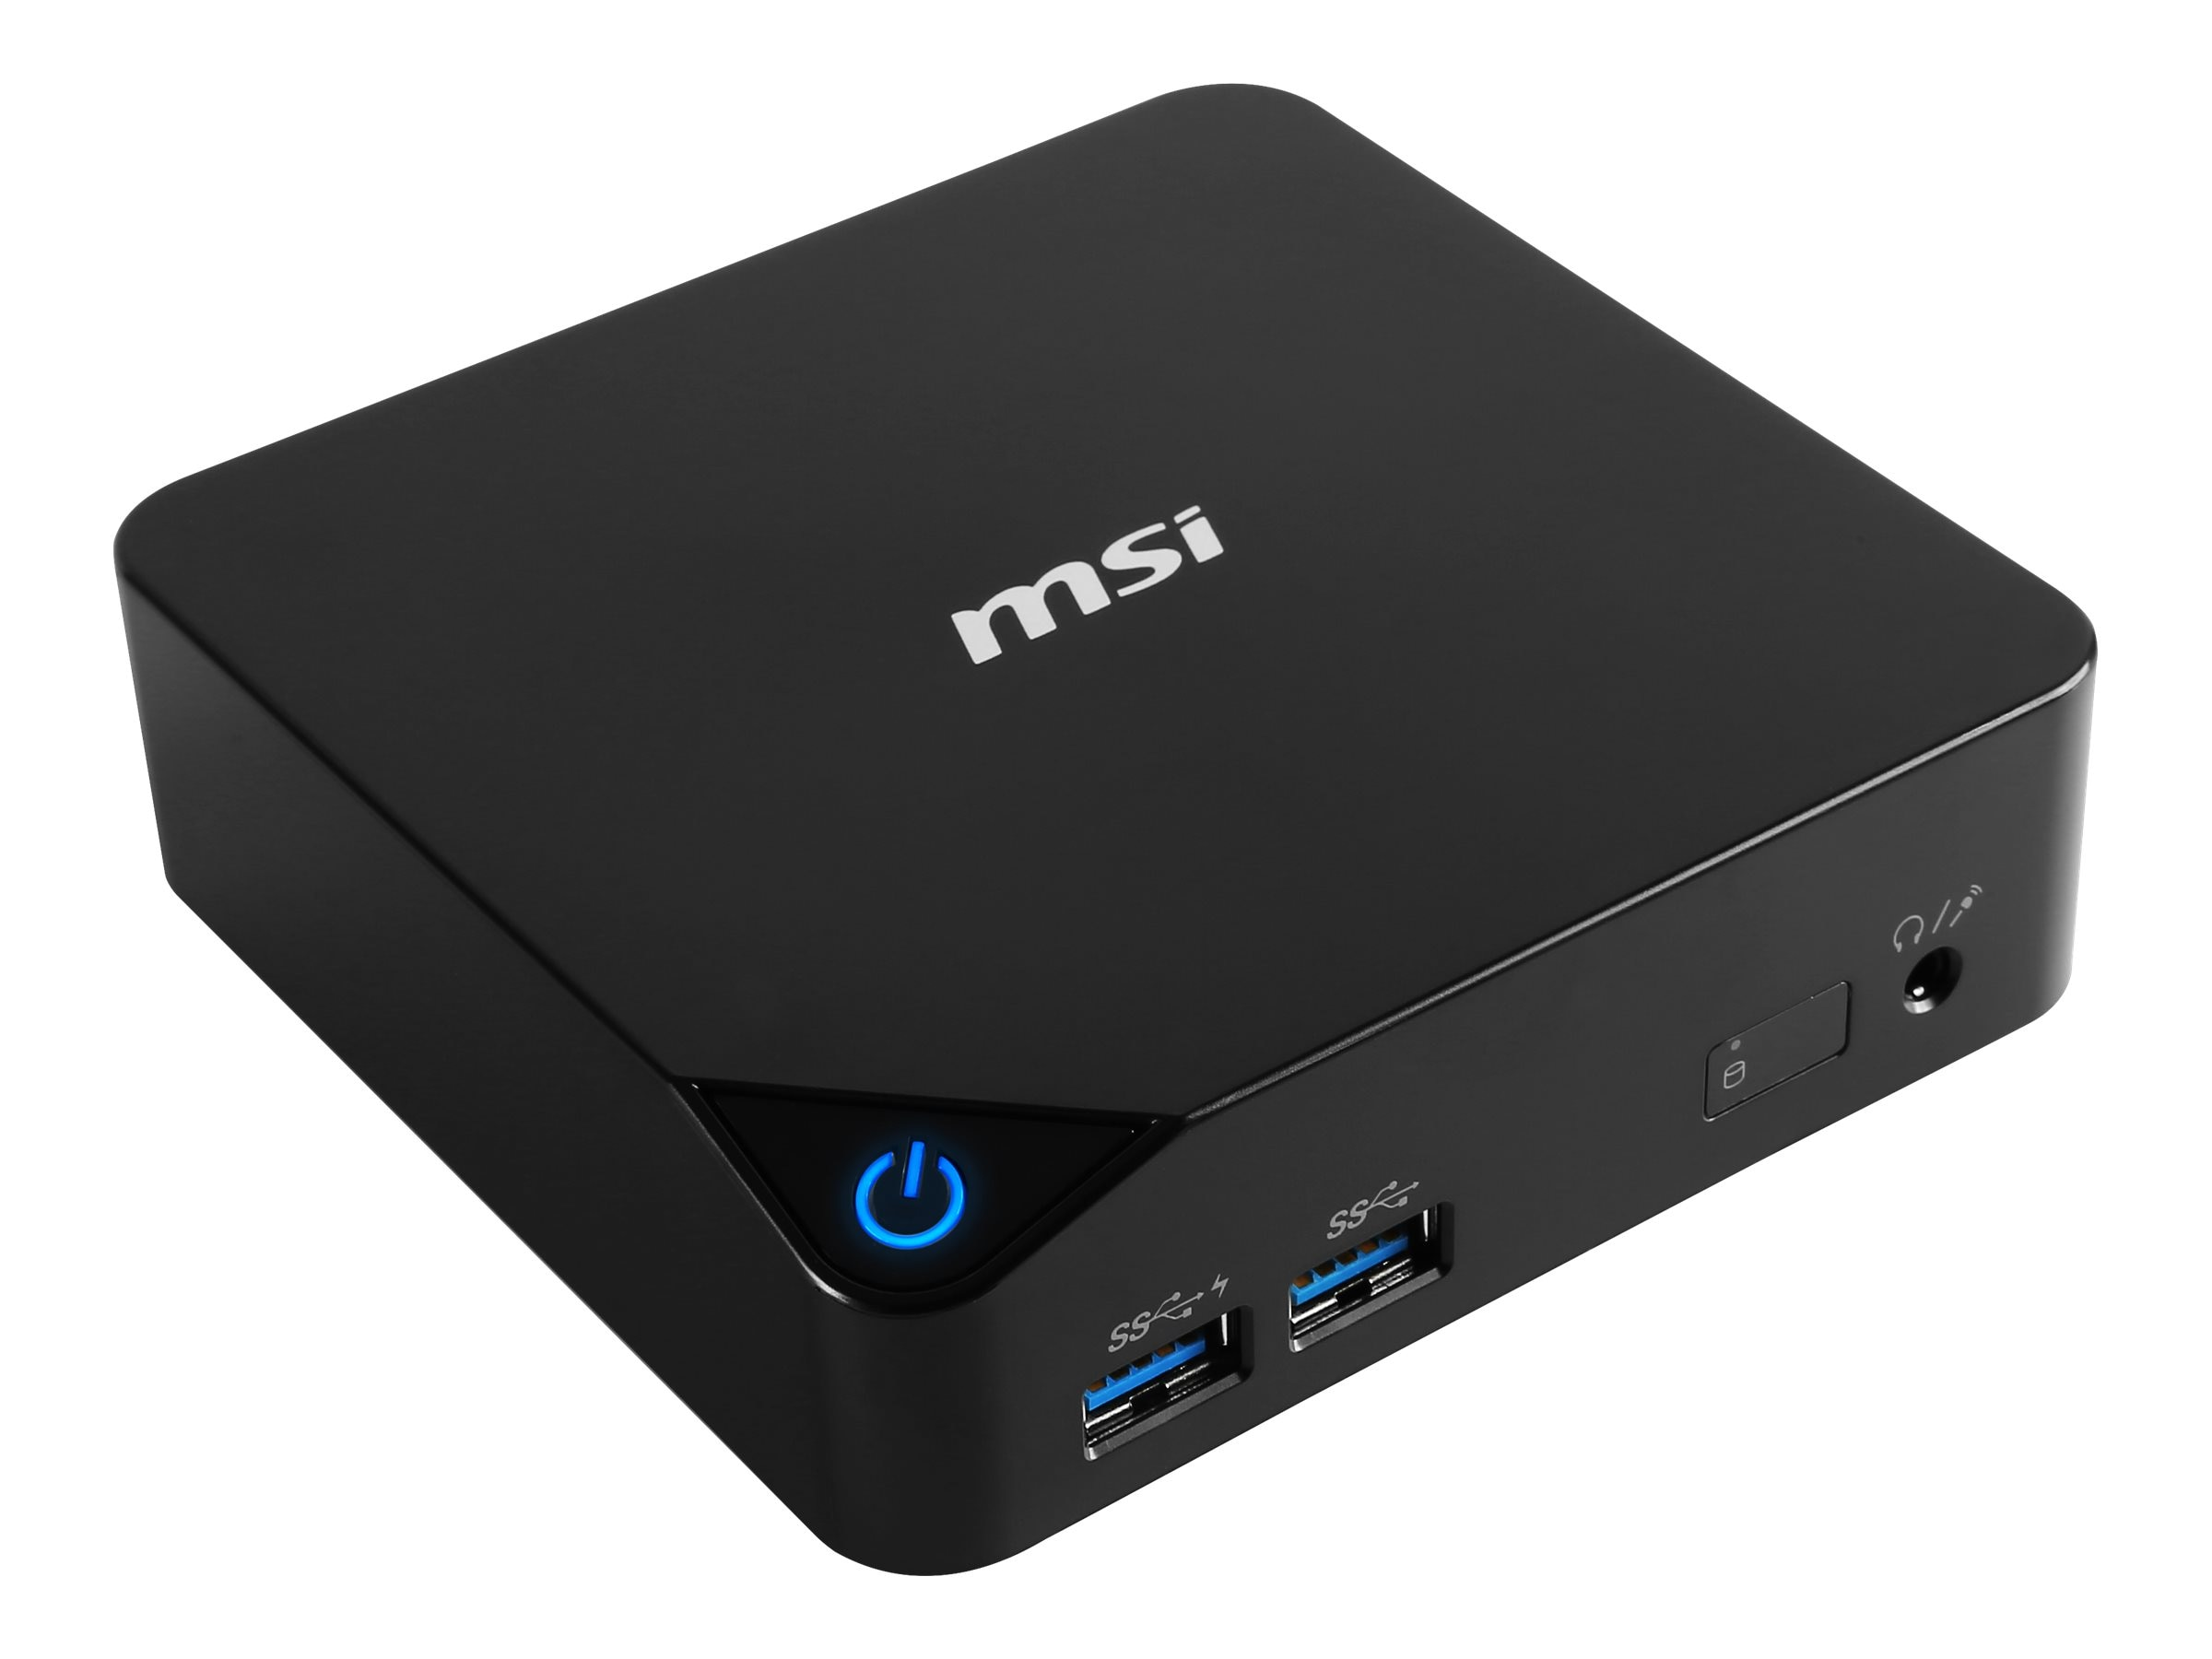 MSI Barebones, Cubi-001BUS Mini PC Core i3-5005U 2.0GHz Max.8GB DDR3L 1x2.5 Bay GbE ac BT NoOS, Black, CUBI-001BUS